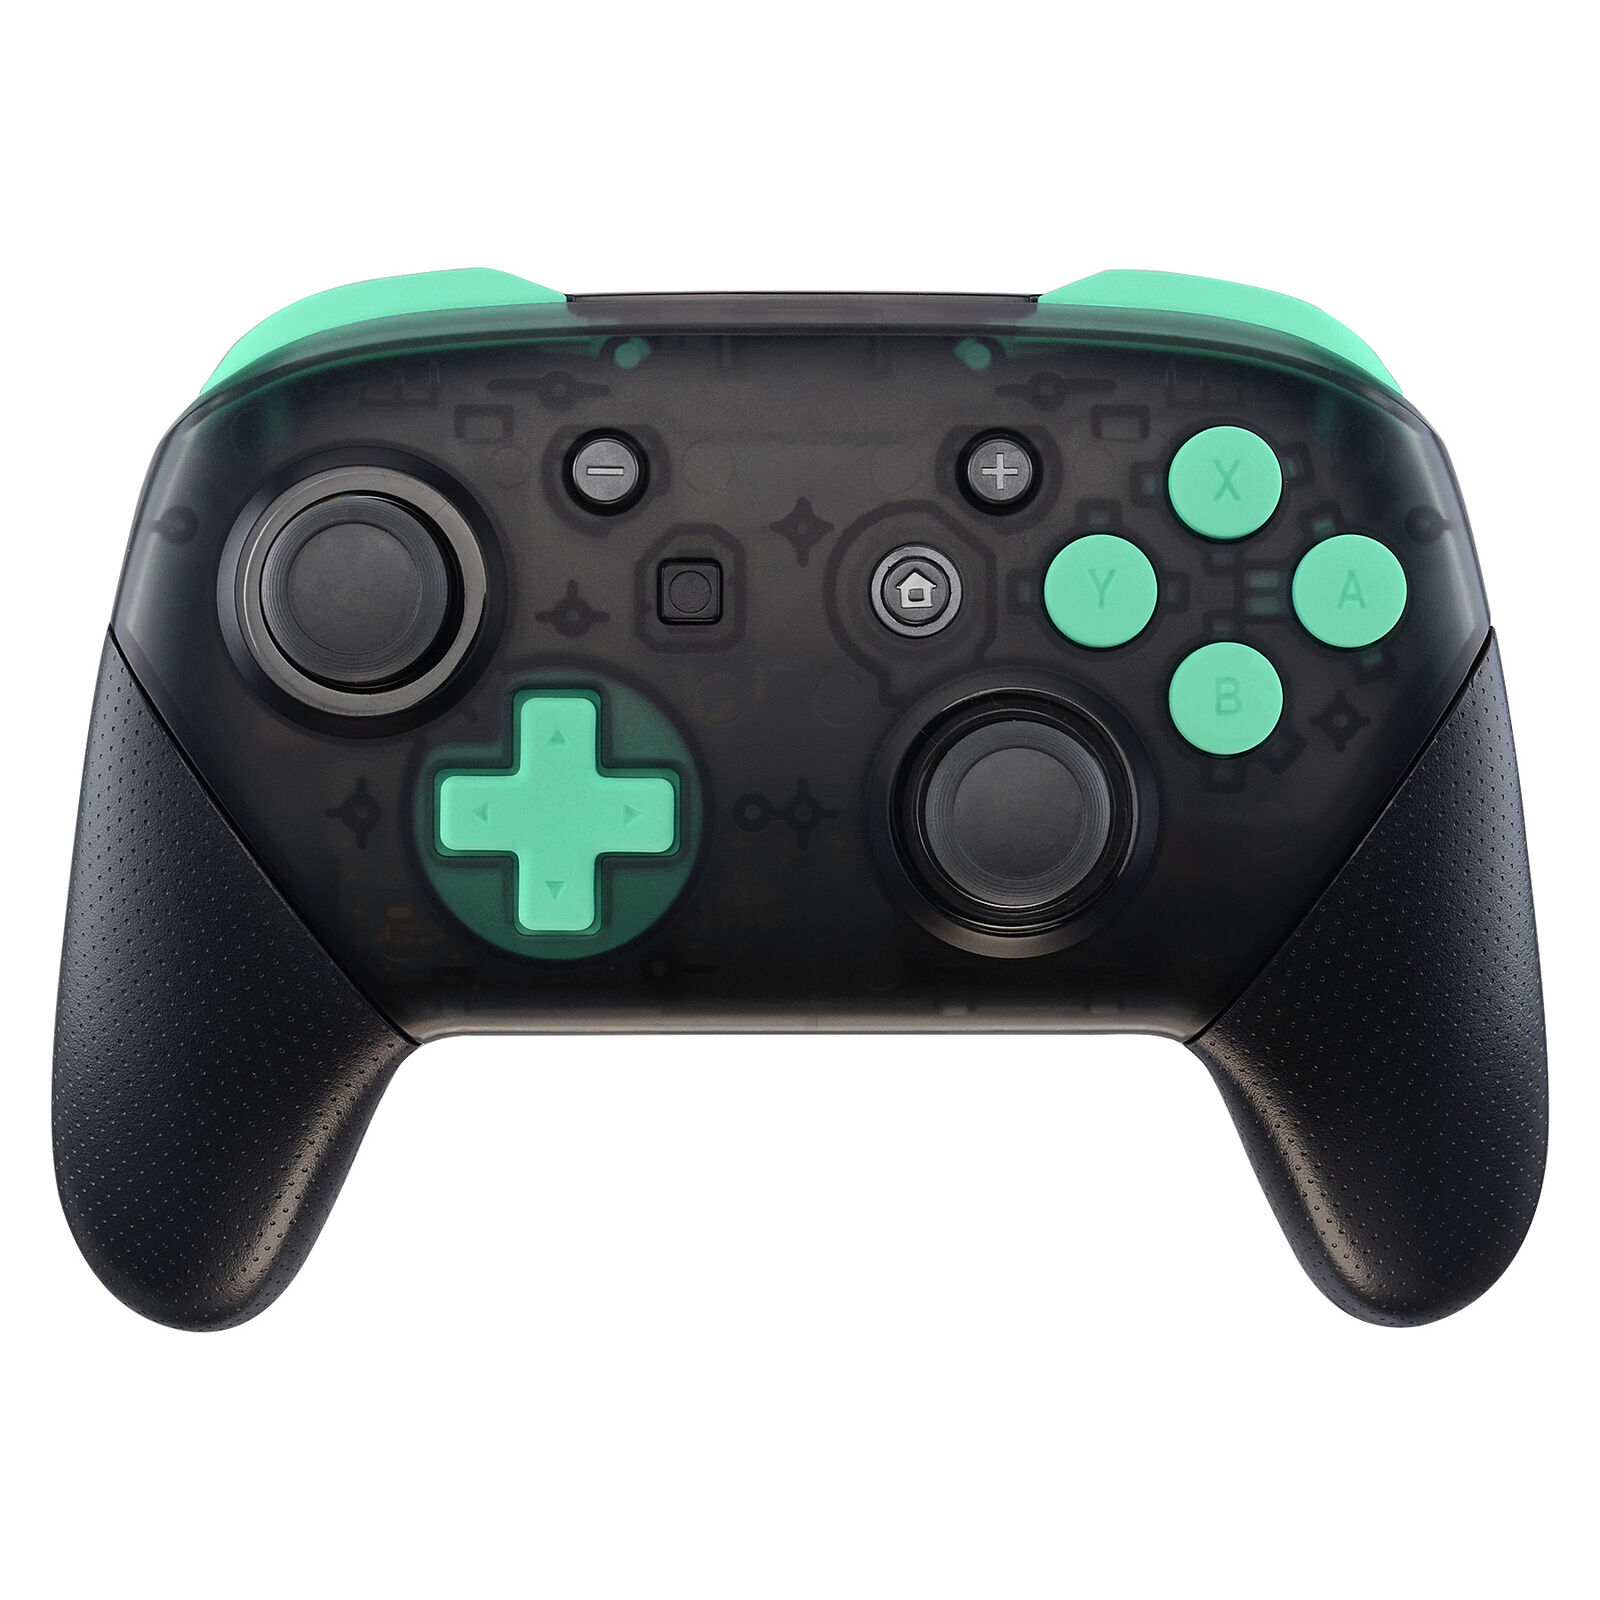 Nintendo Switch Pro Controller Black and Mint Green Buttons